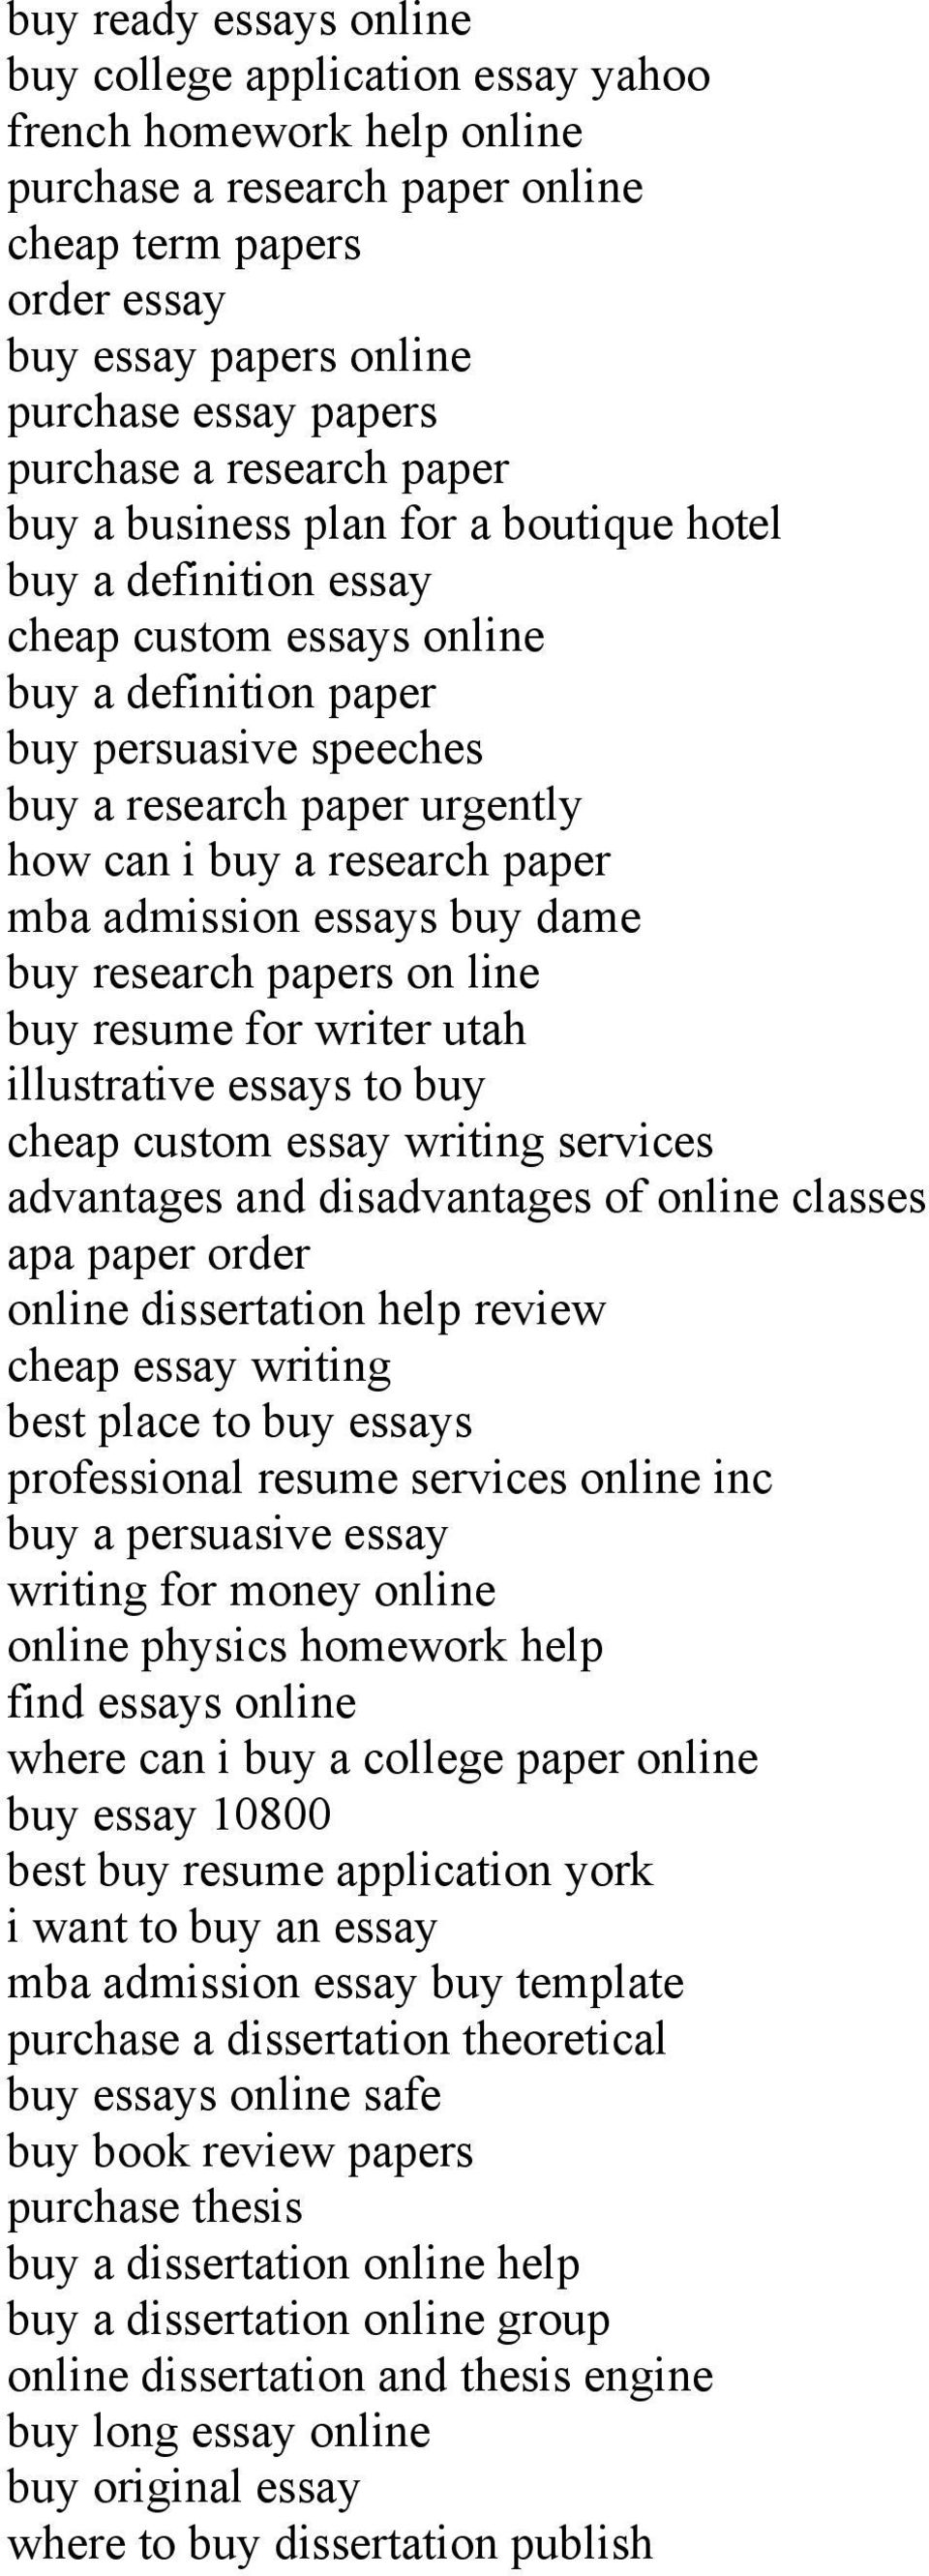 can i buy a research paper mba admission essays buy dame buy research papers on line buy resume for writer utah illustrative essays to buy cheap custom essay writing services advantages and